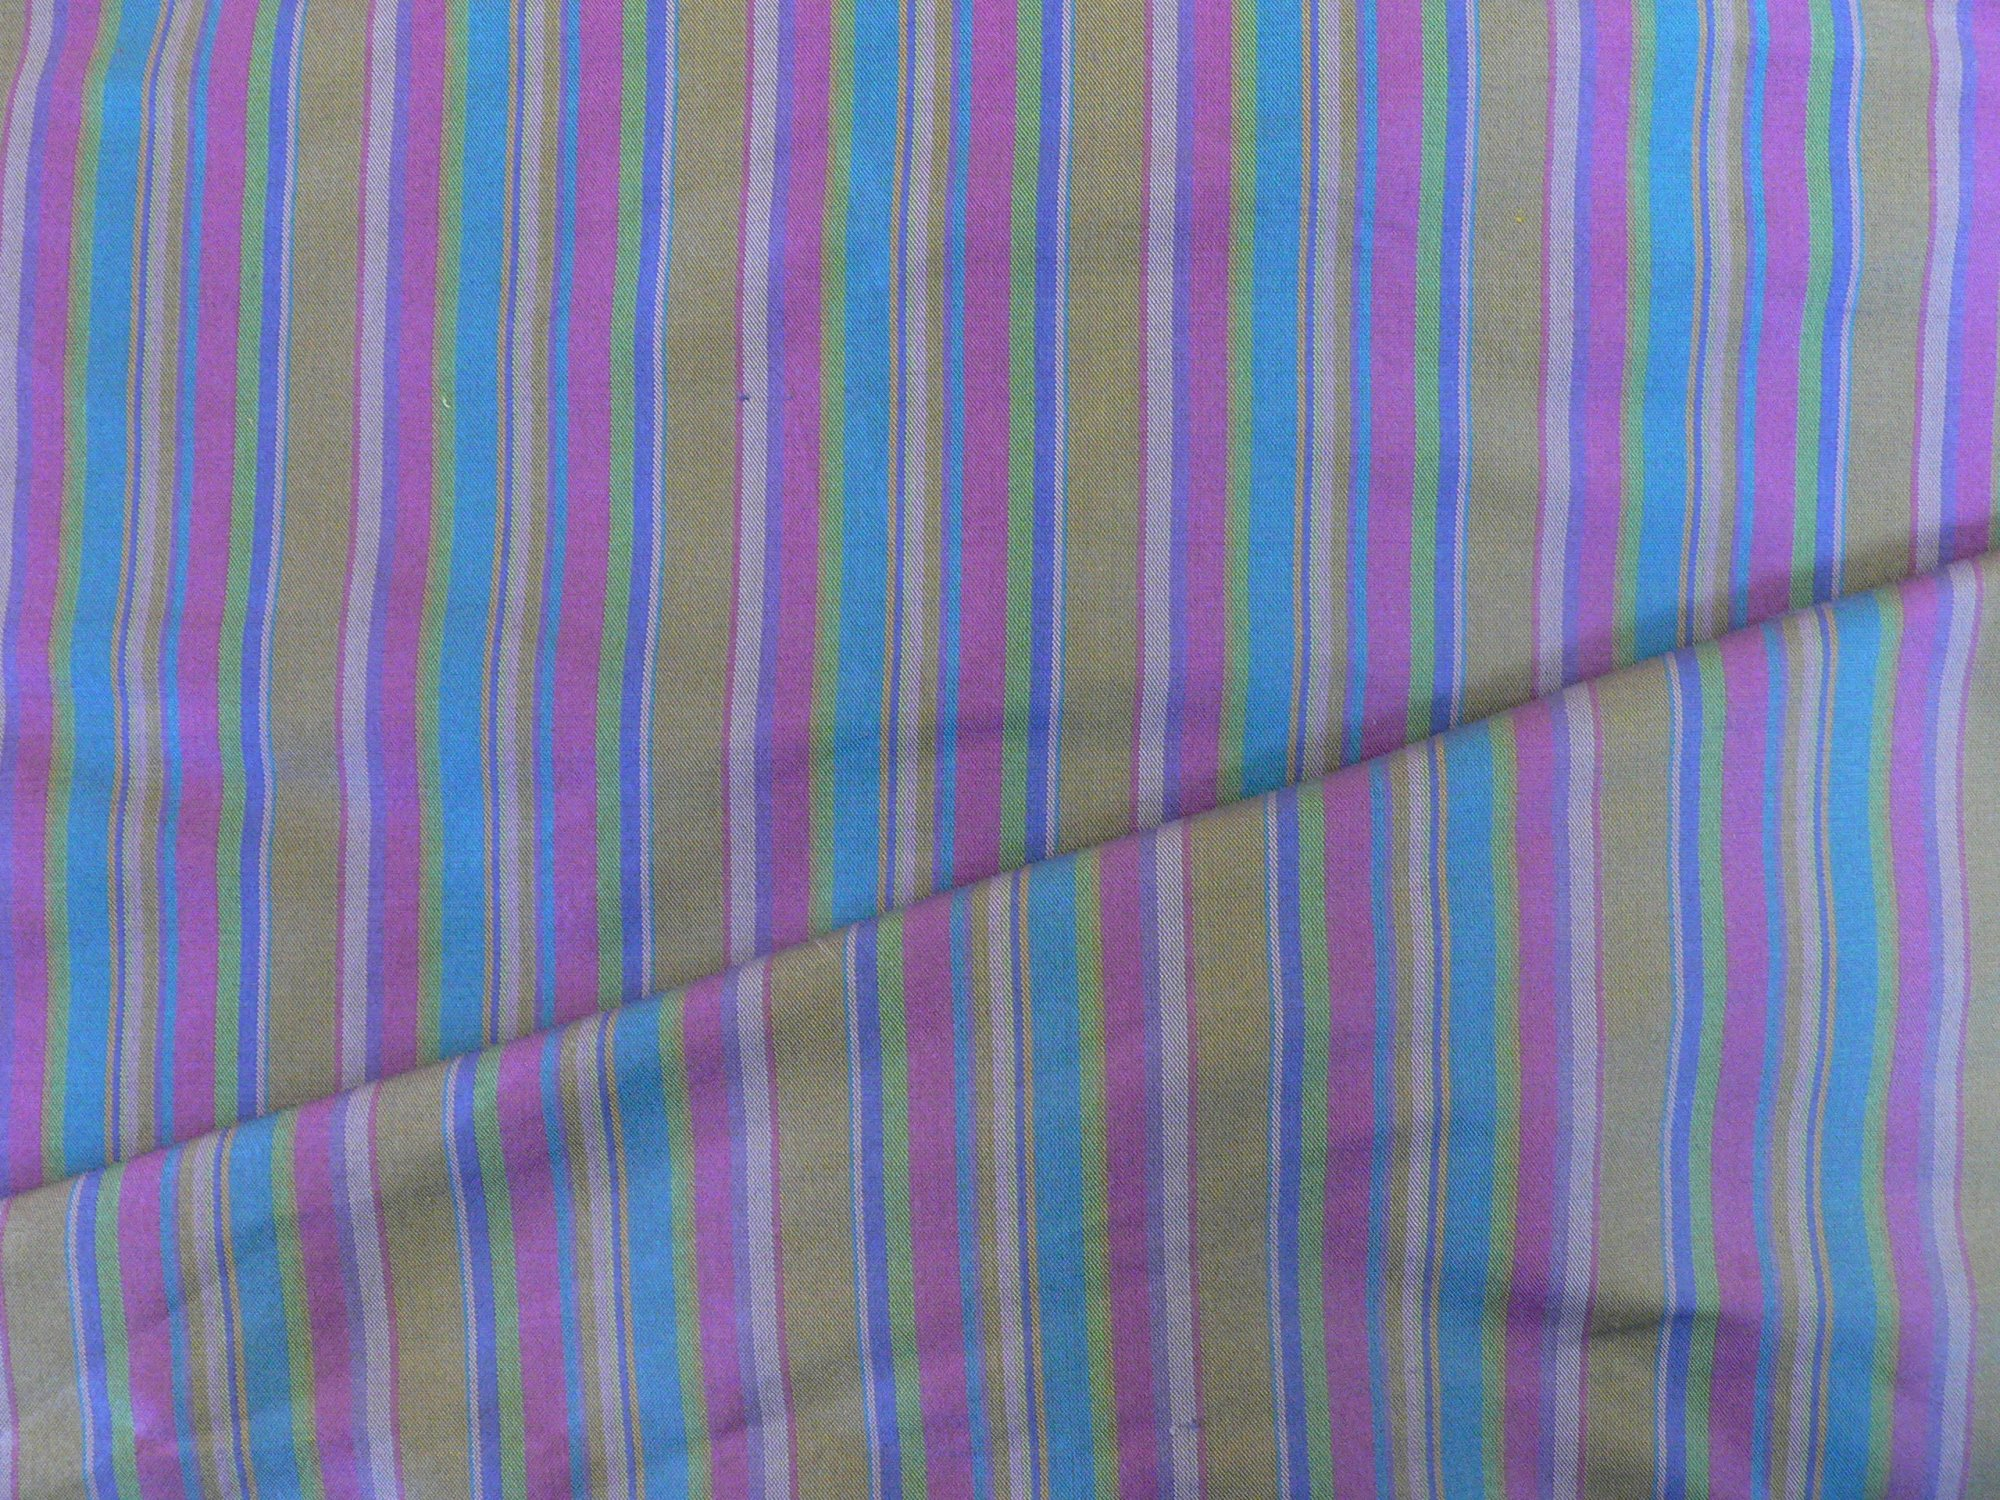 100% silk taffeta, multi striped lilac/turquoise/green